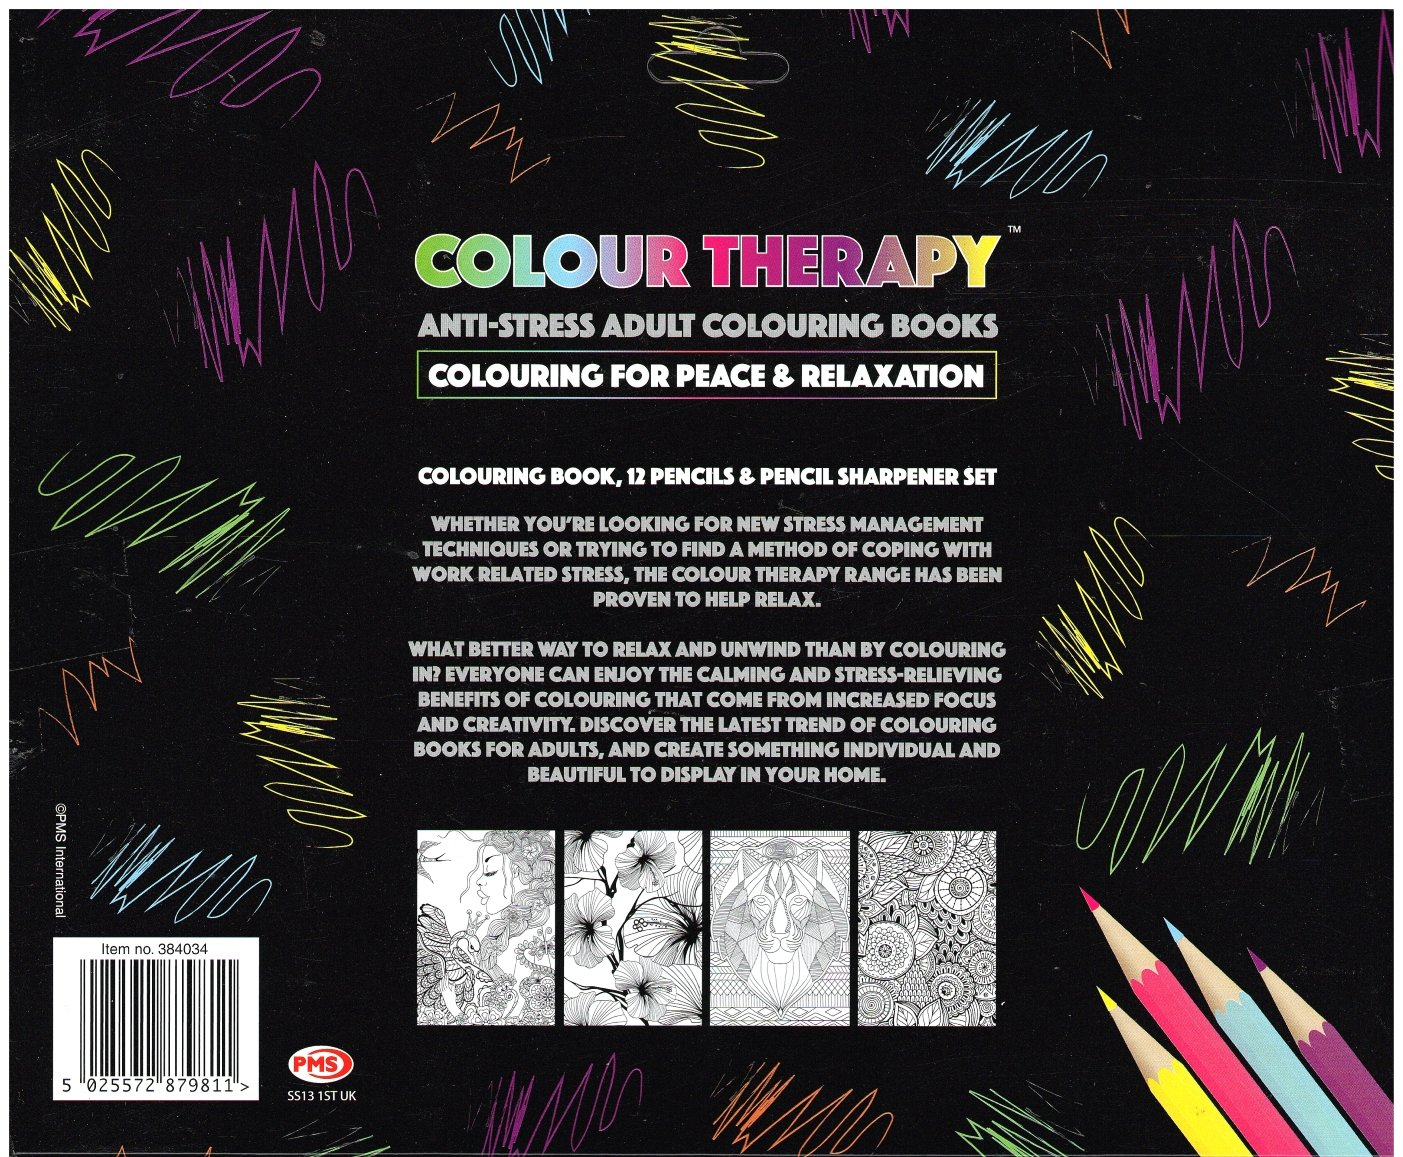 Colour therapy for relaxation - Colour Therapy Anti Stress Colouring Sharpner Set With Pencils Amazon Co Uk Books